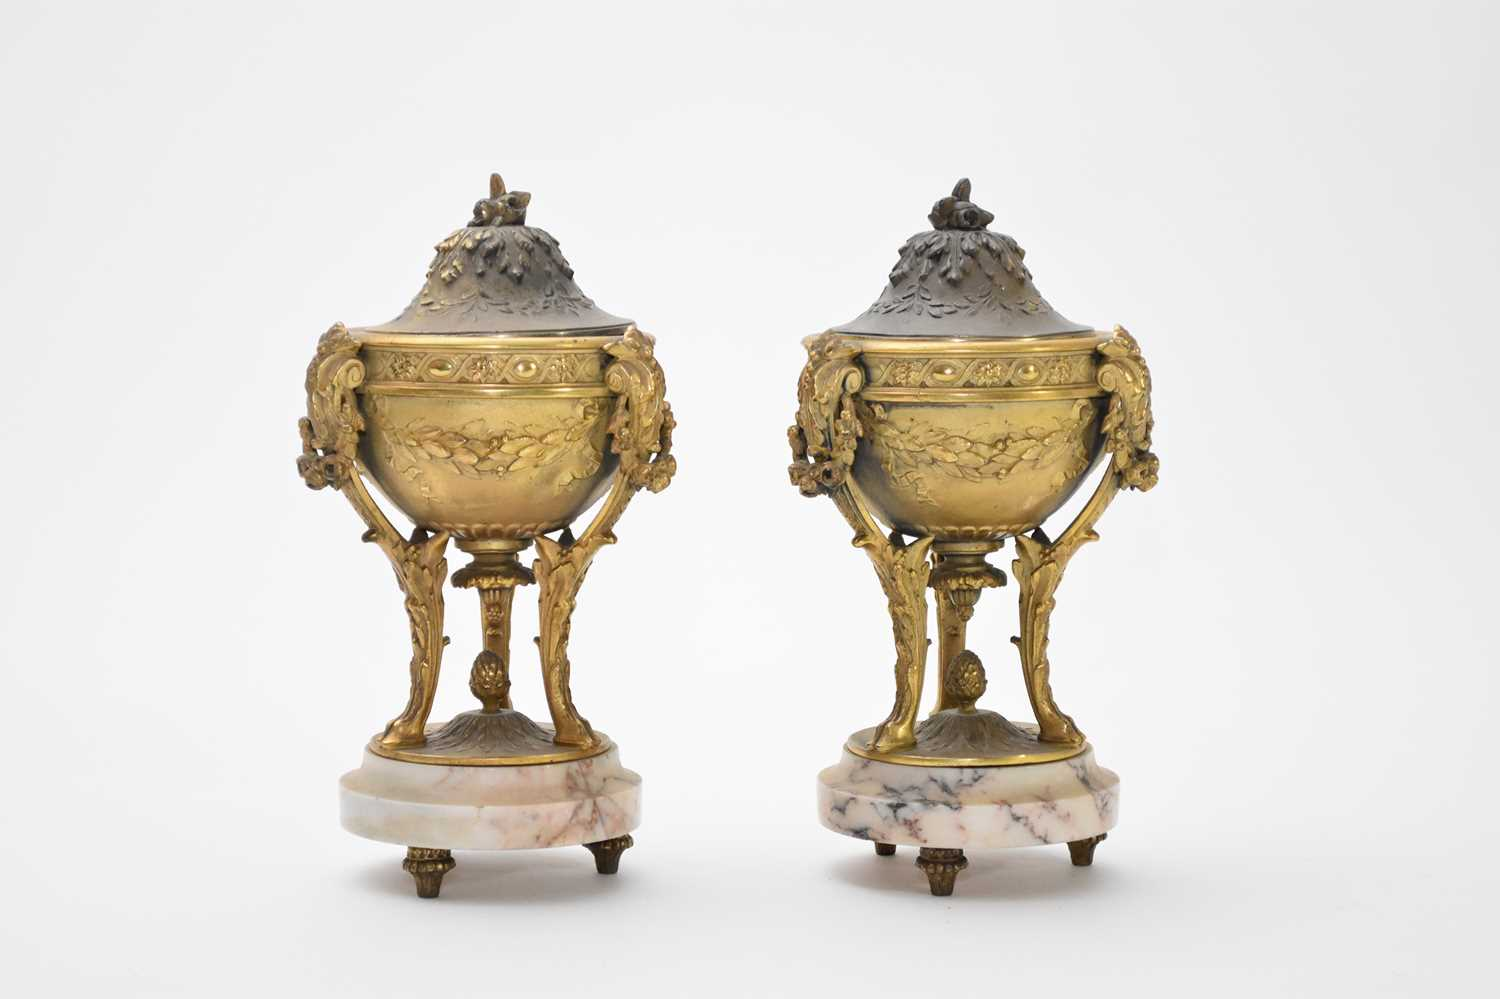 A pair of gilt metal and white veined marble urns and covers, circa 1900